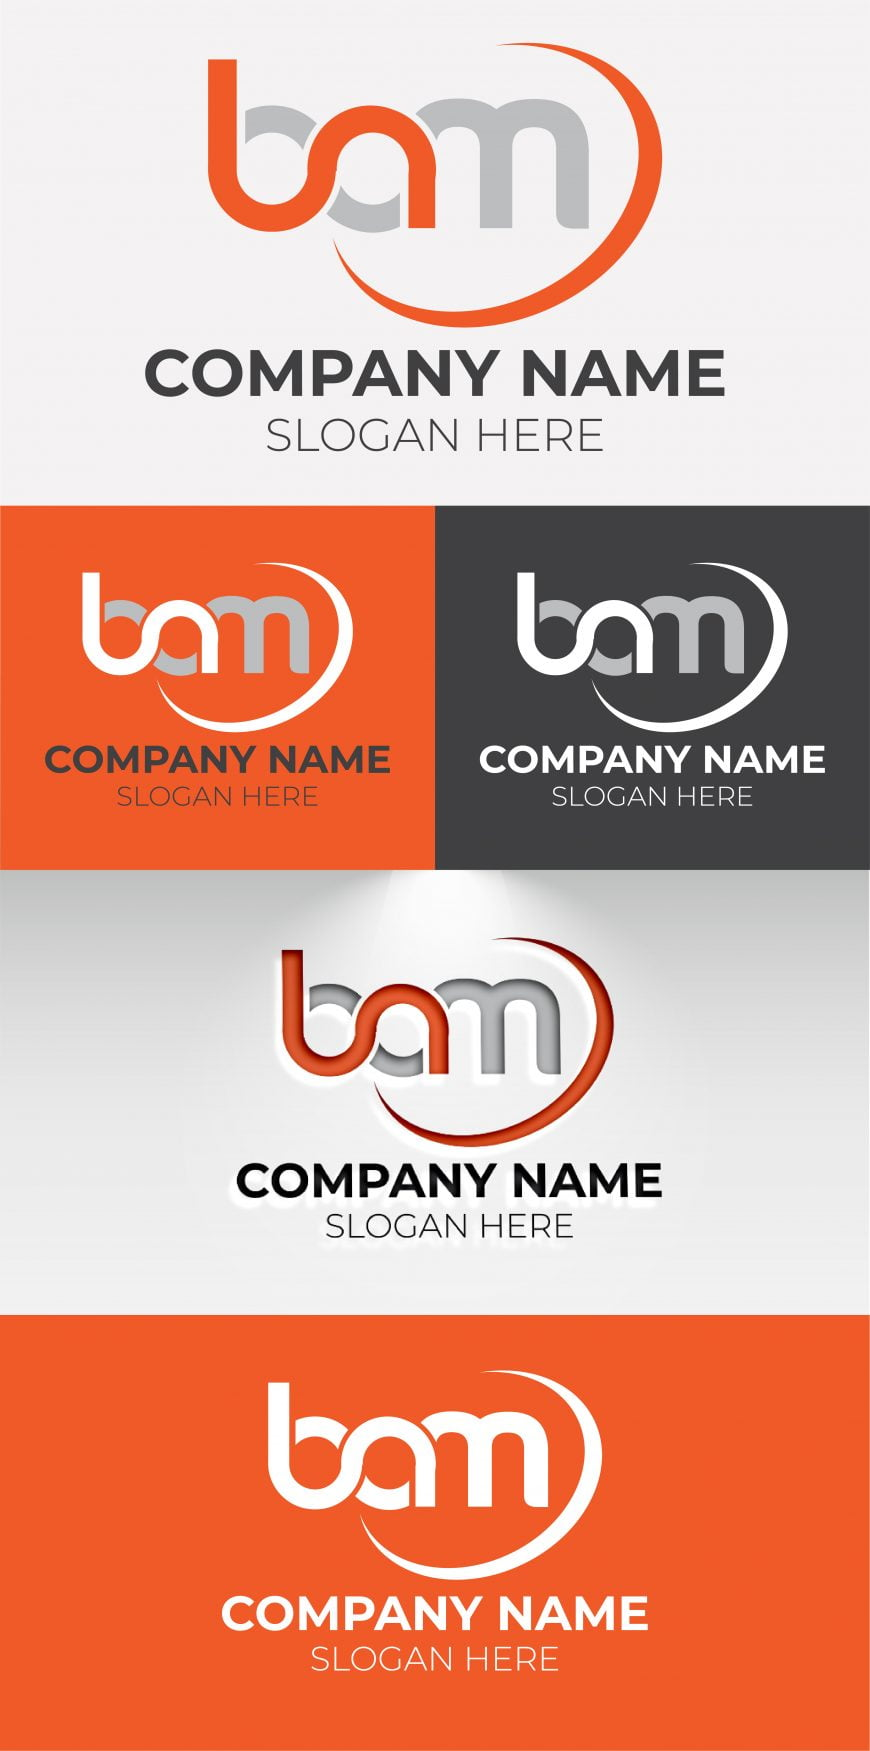 BAM-LETTER-DESIGN-FREE-TEMPLATE-scaled